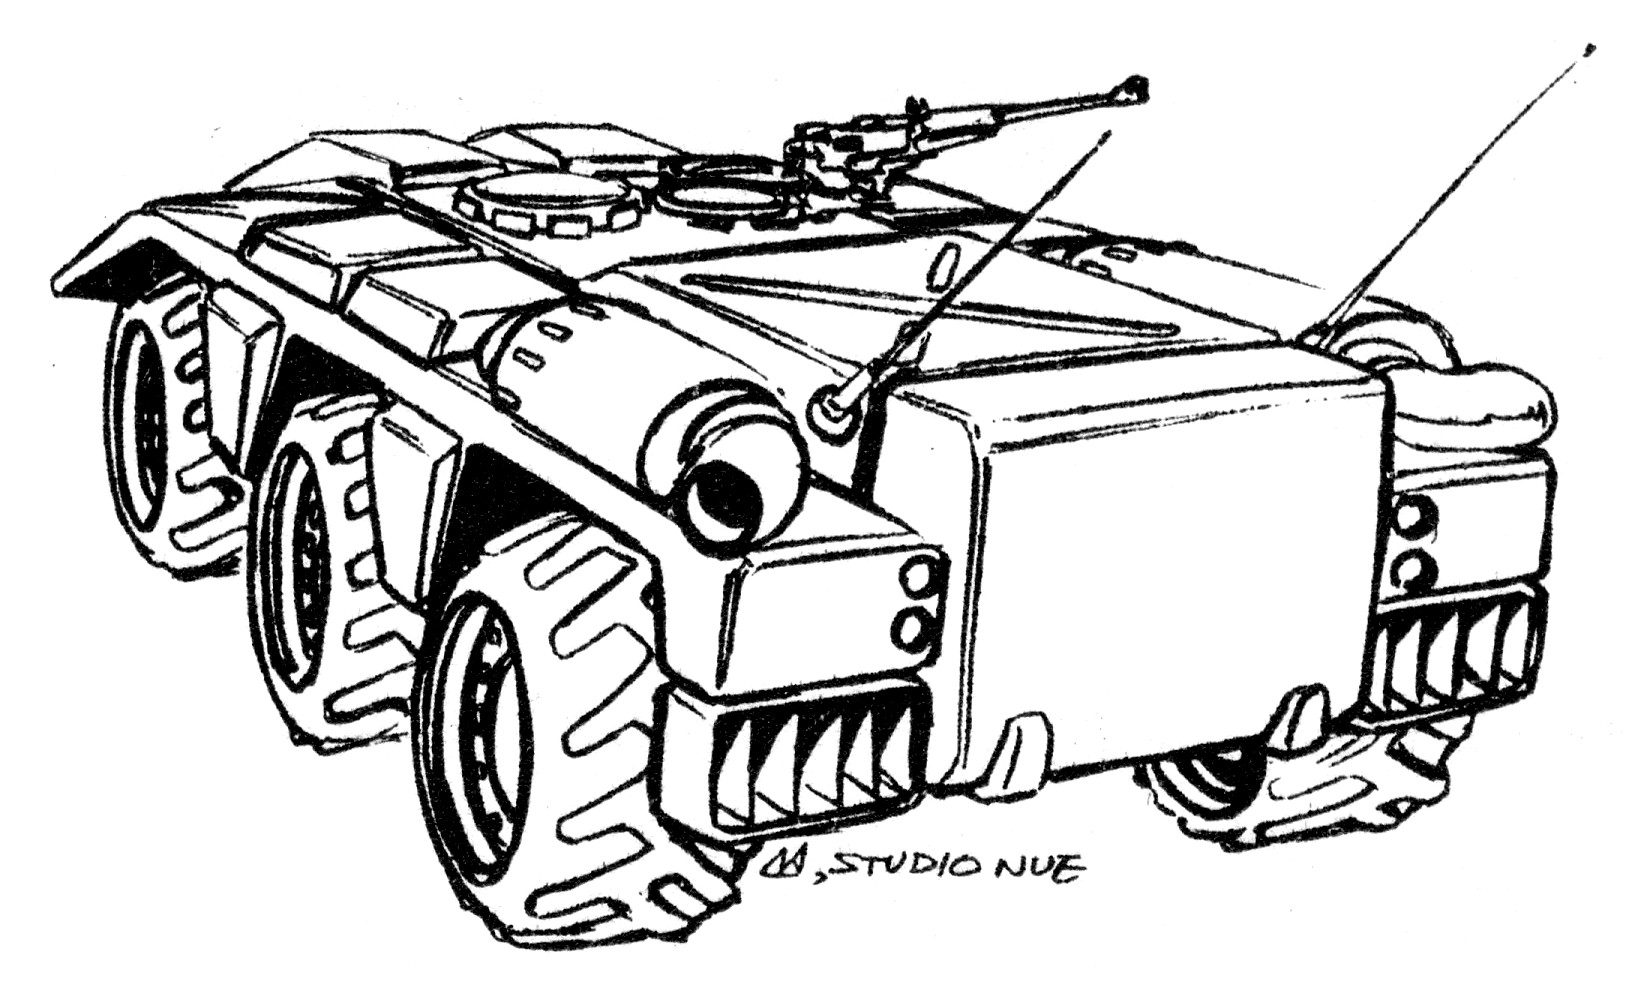 LACV-60 (M1100) Light Cavalry Vehicle Armored Security Vehicle 3